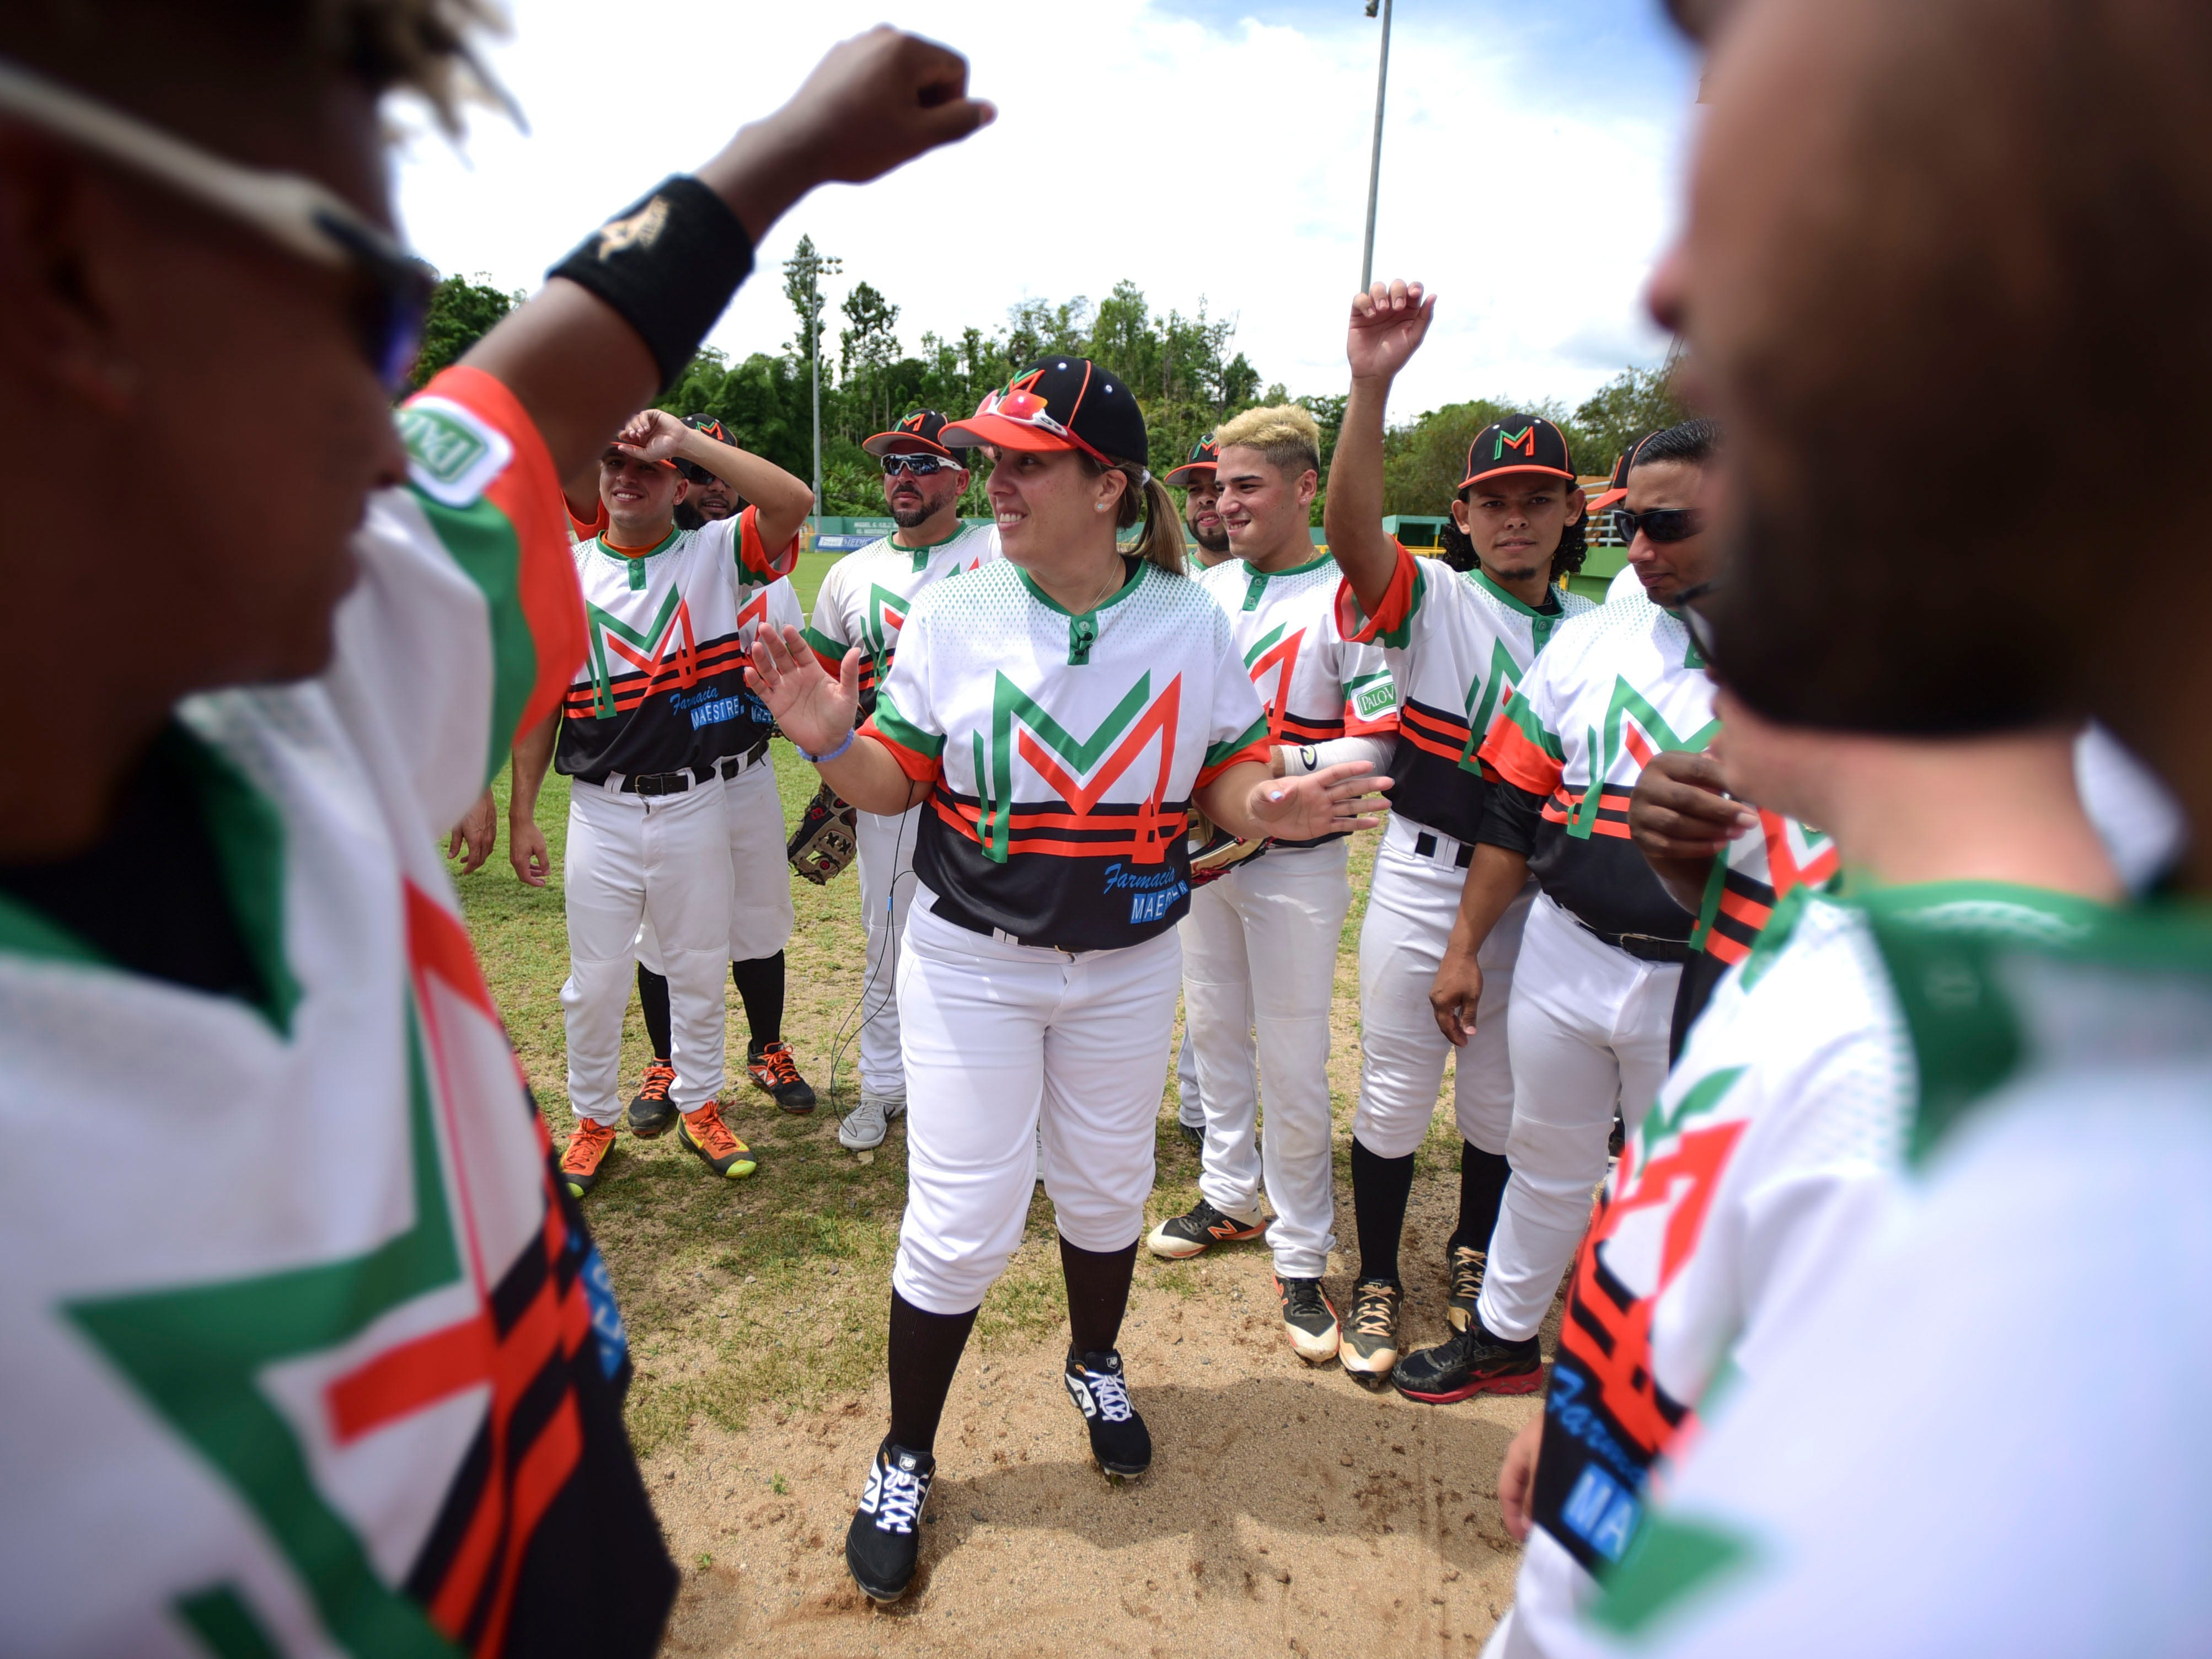 """Diamilette Quiles, center, is welcomed by teammates from the Mountaineers of Utuado baseball team moments before their game against the Patrulleros de San Sebastian at Ramon Cabanas Stadium in Utuado, Puerto Rico, Sunday, May 19, 2019. Quiles, who joined the team days ago, is the first women in Puerto Rico's history to play in an otherwise all-male baseball tournament organized by a popular semi-pro league. """"I'm leaving it all in God's hands,"""" she said."""